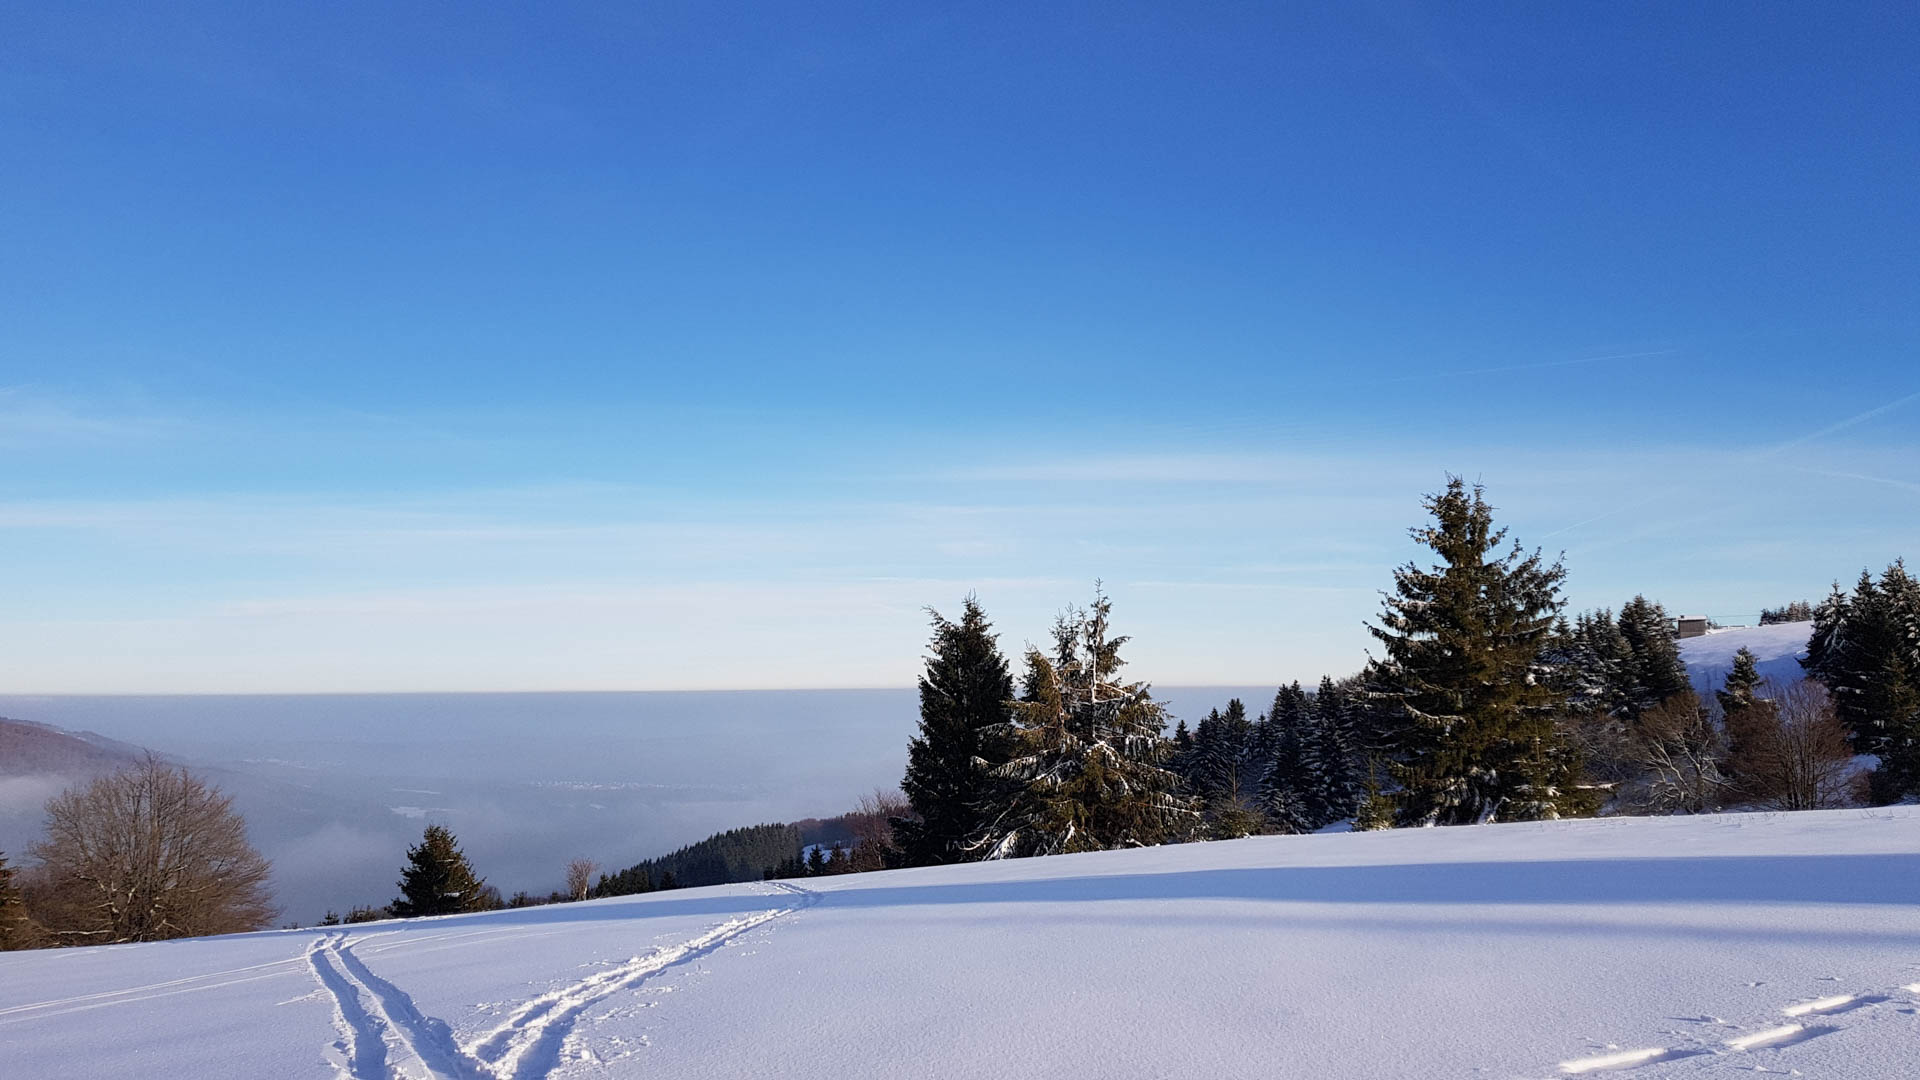 Feuerberg_Winter_2019-02-06-129